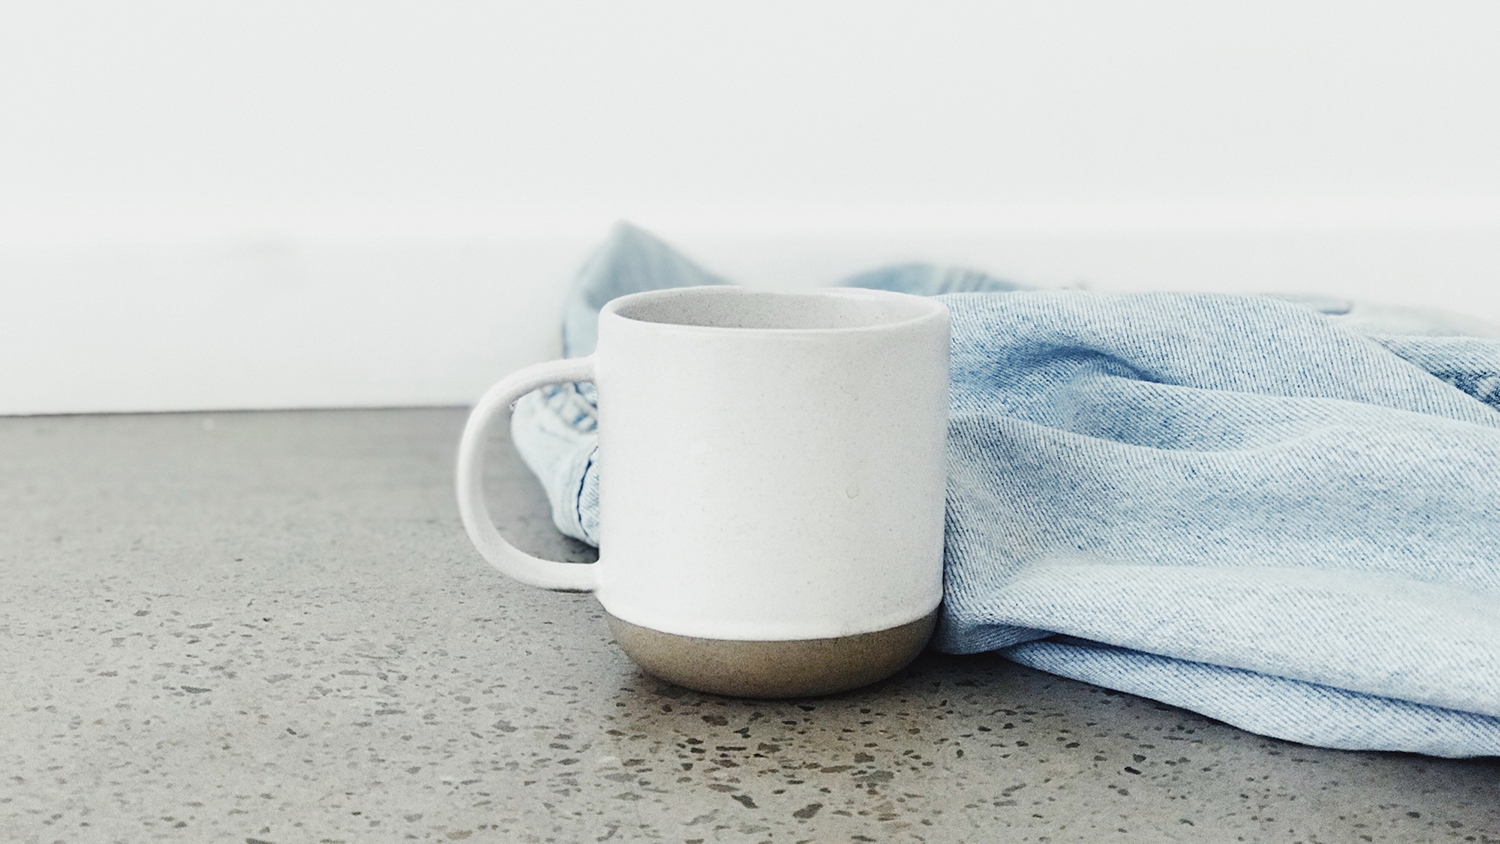 Coffee cup and denim jacket